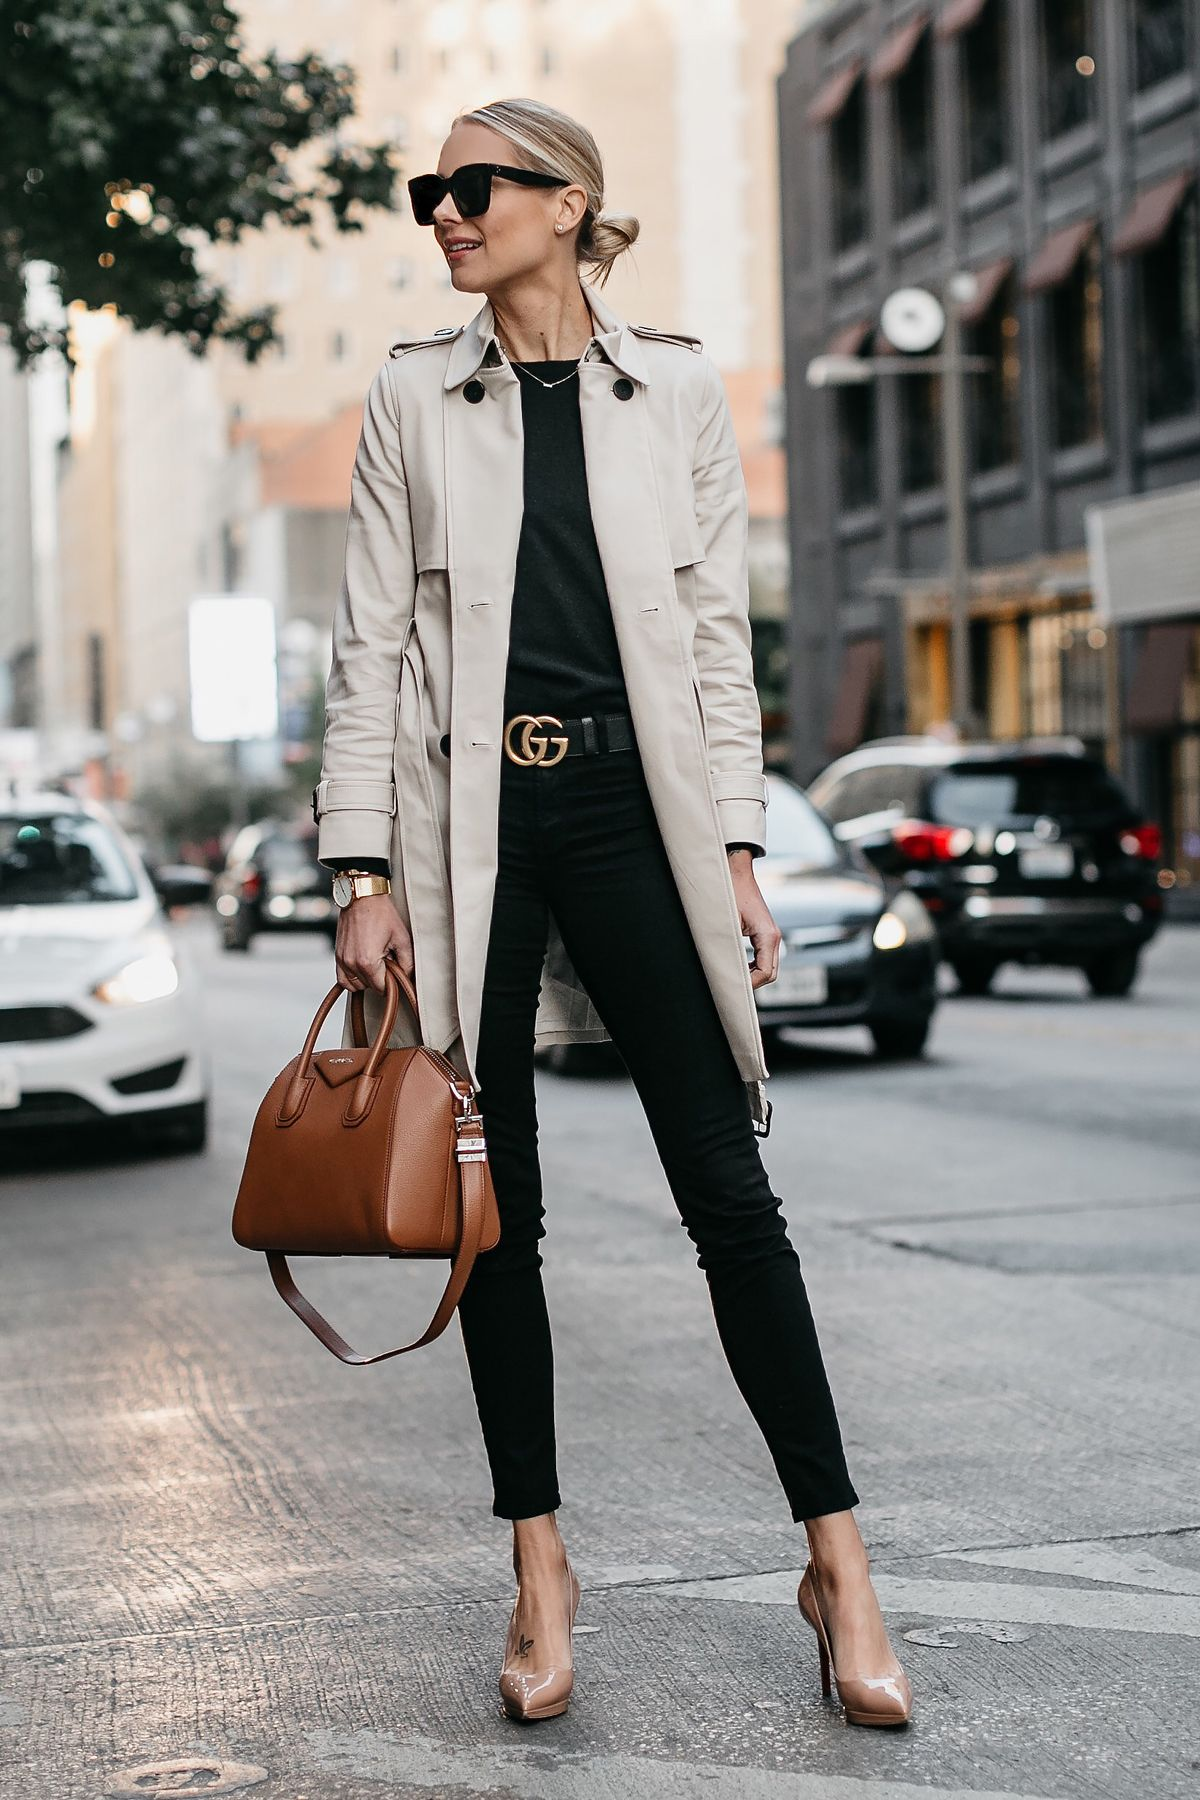 972103bd76 Blonde Woman Wearing Club Monaco Trench Coat Black Sweater Black Skinny  Jeans Gucci Marmont Belt Nude Pumps Givenchy Antigona Cognac Satchel  Fashion Jackson ...